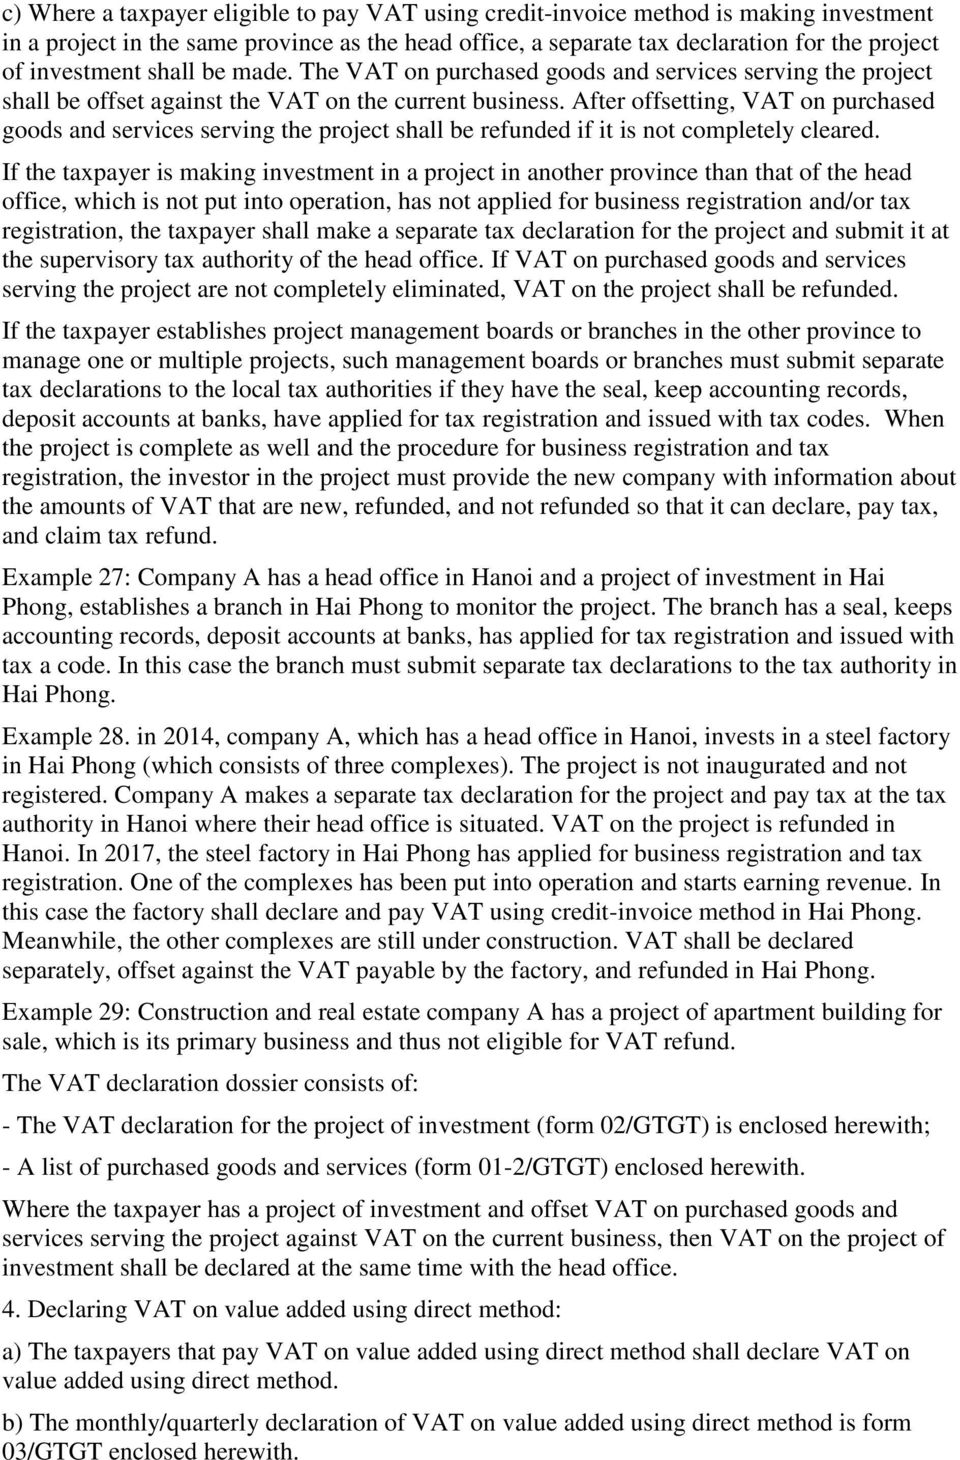 Ministry Of Finance Socialist Republic Vietnam Independence Next To Basic Electricitygtgt After Offsetting Vat On Purchased Goods And Services Serving The Project Shall Be Refunded If